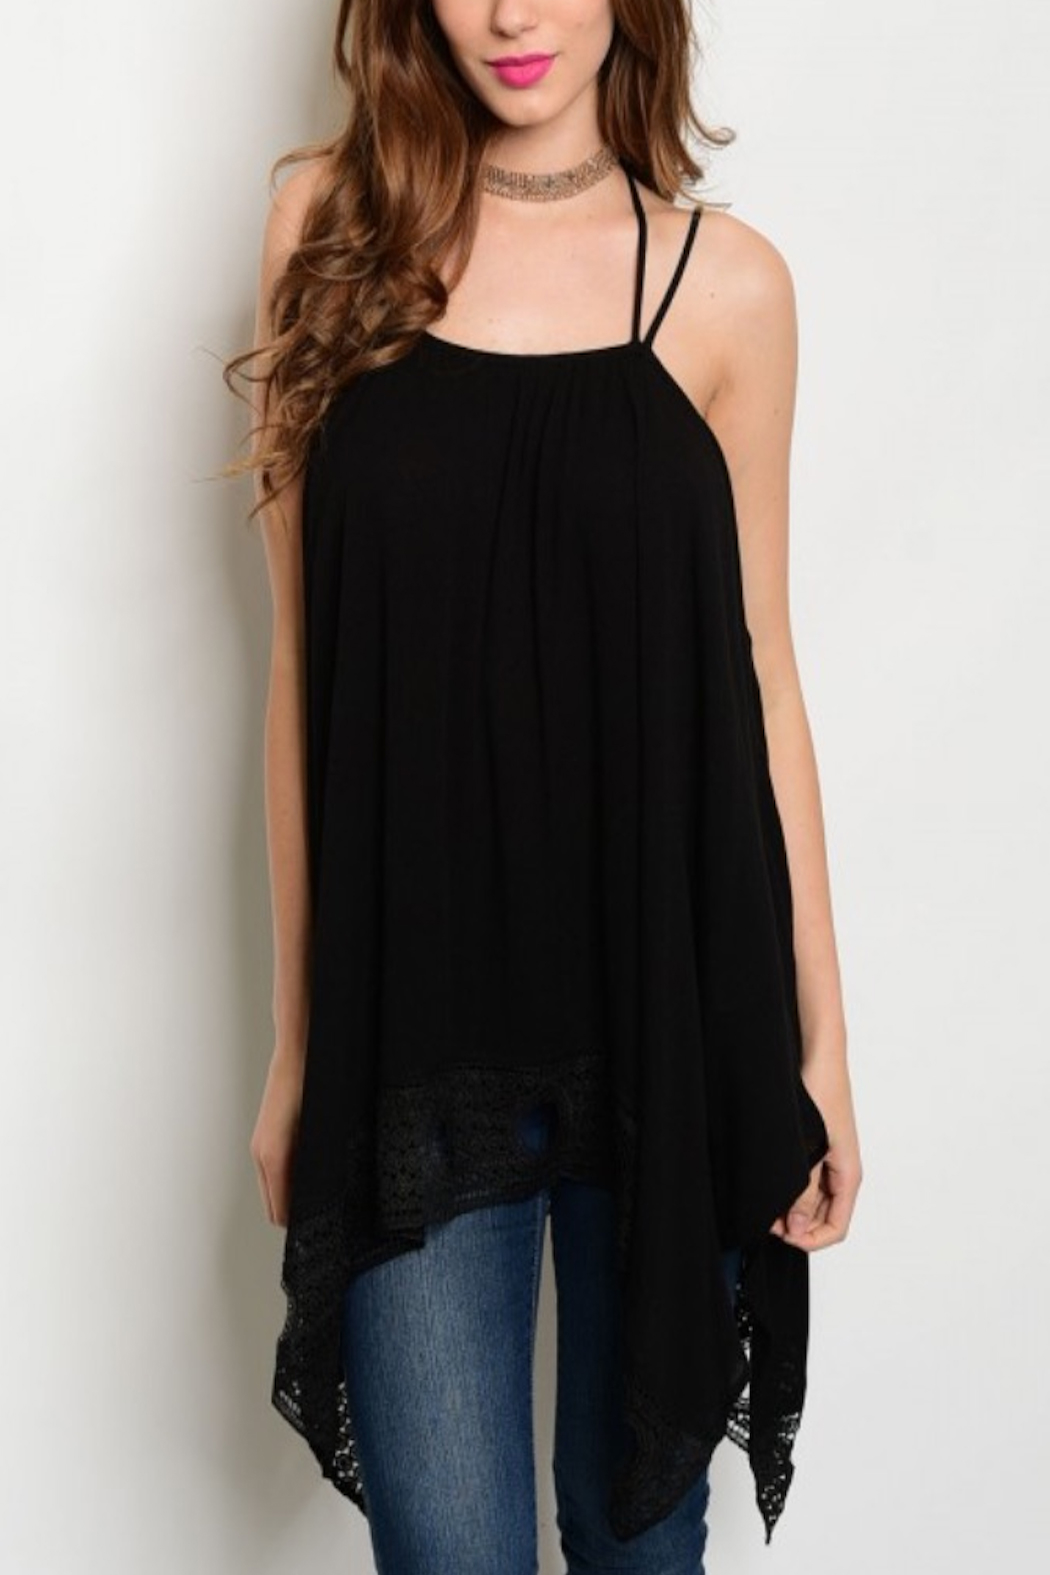 Tracie's Black Tunic Top - Main Image